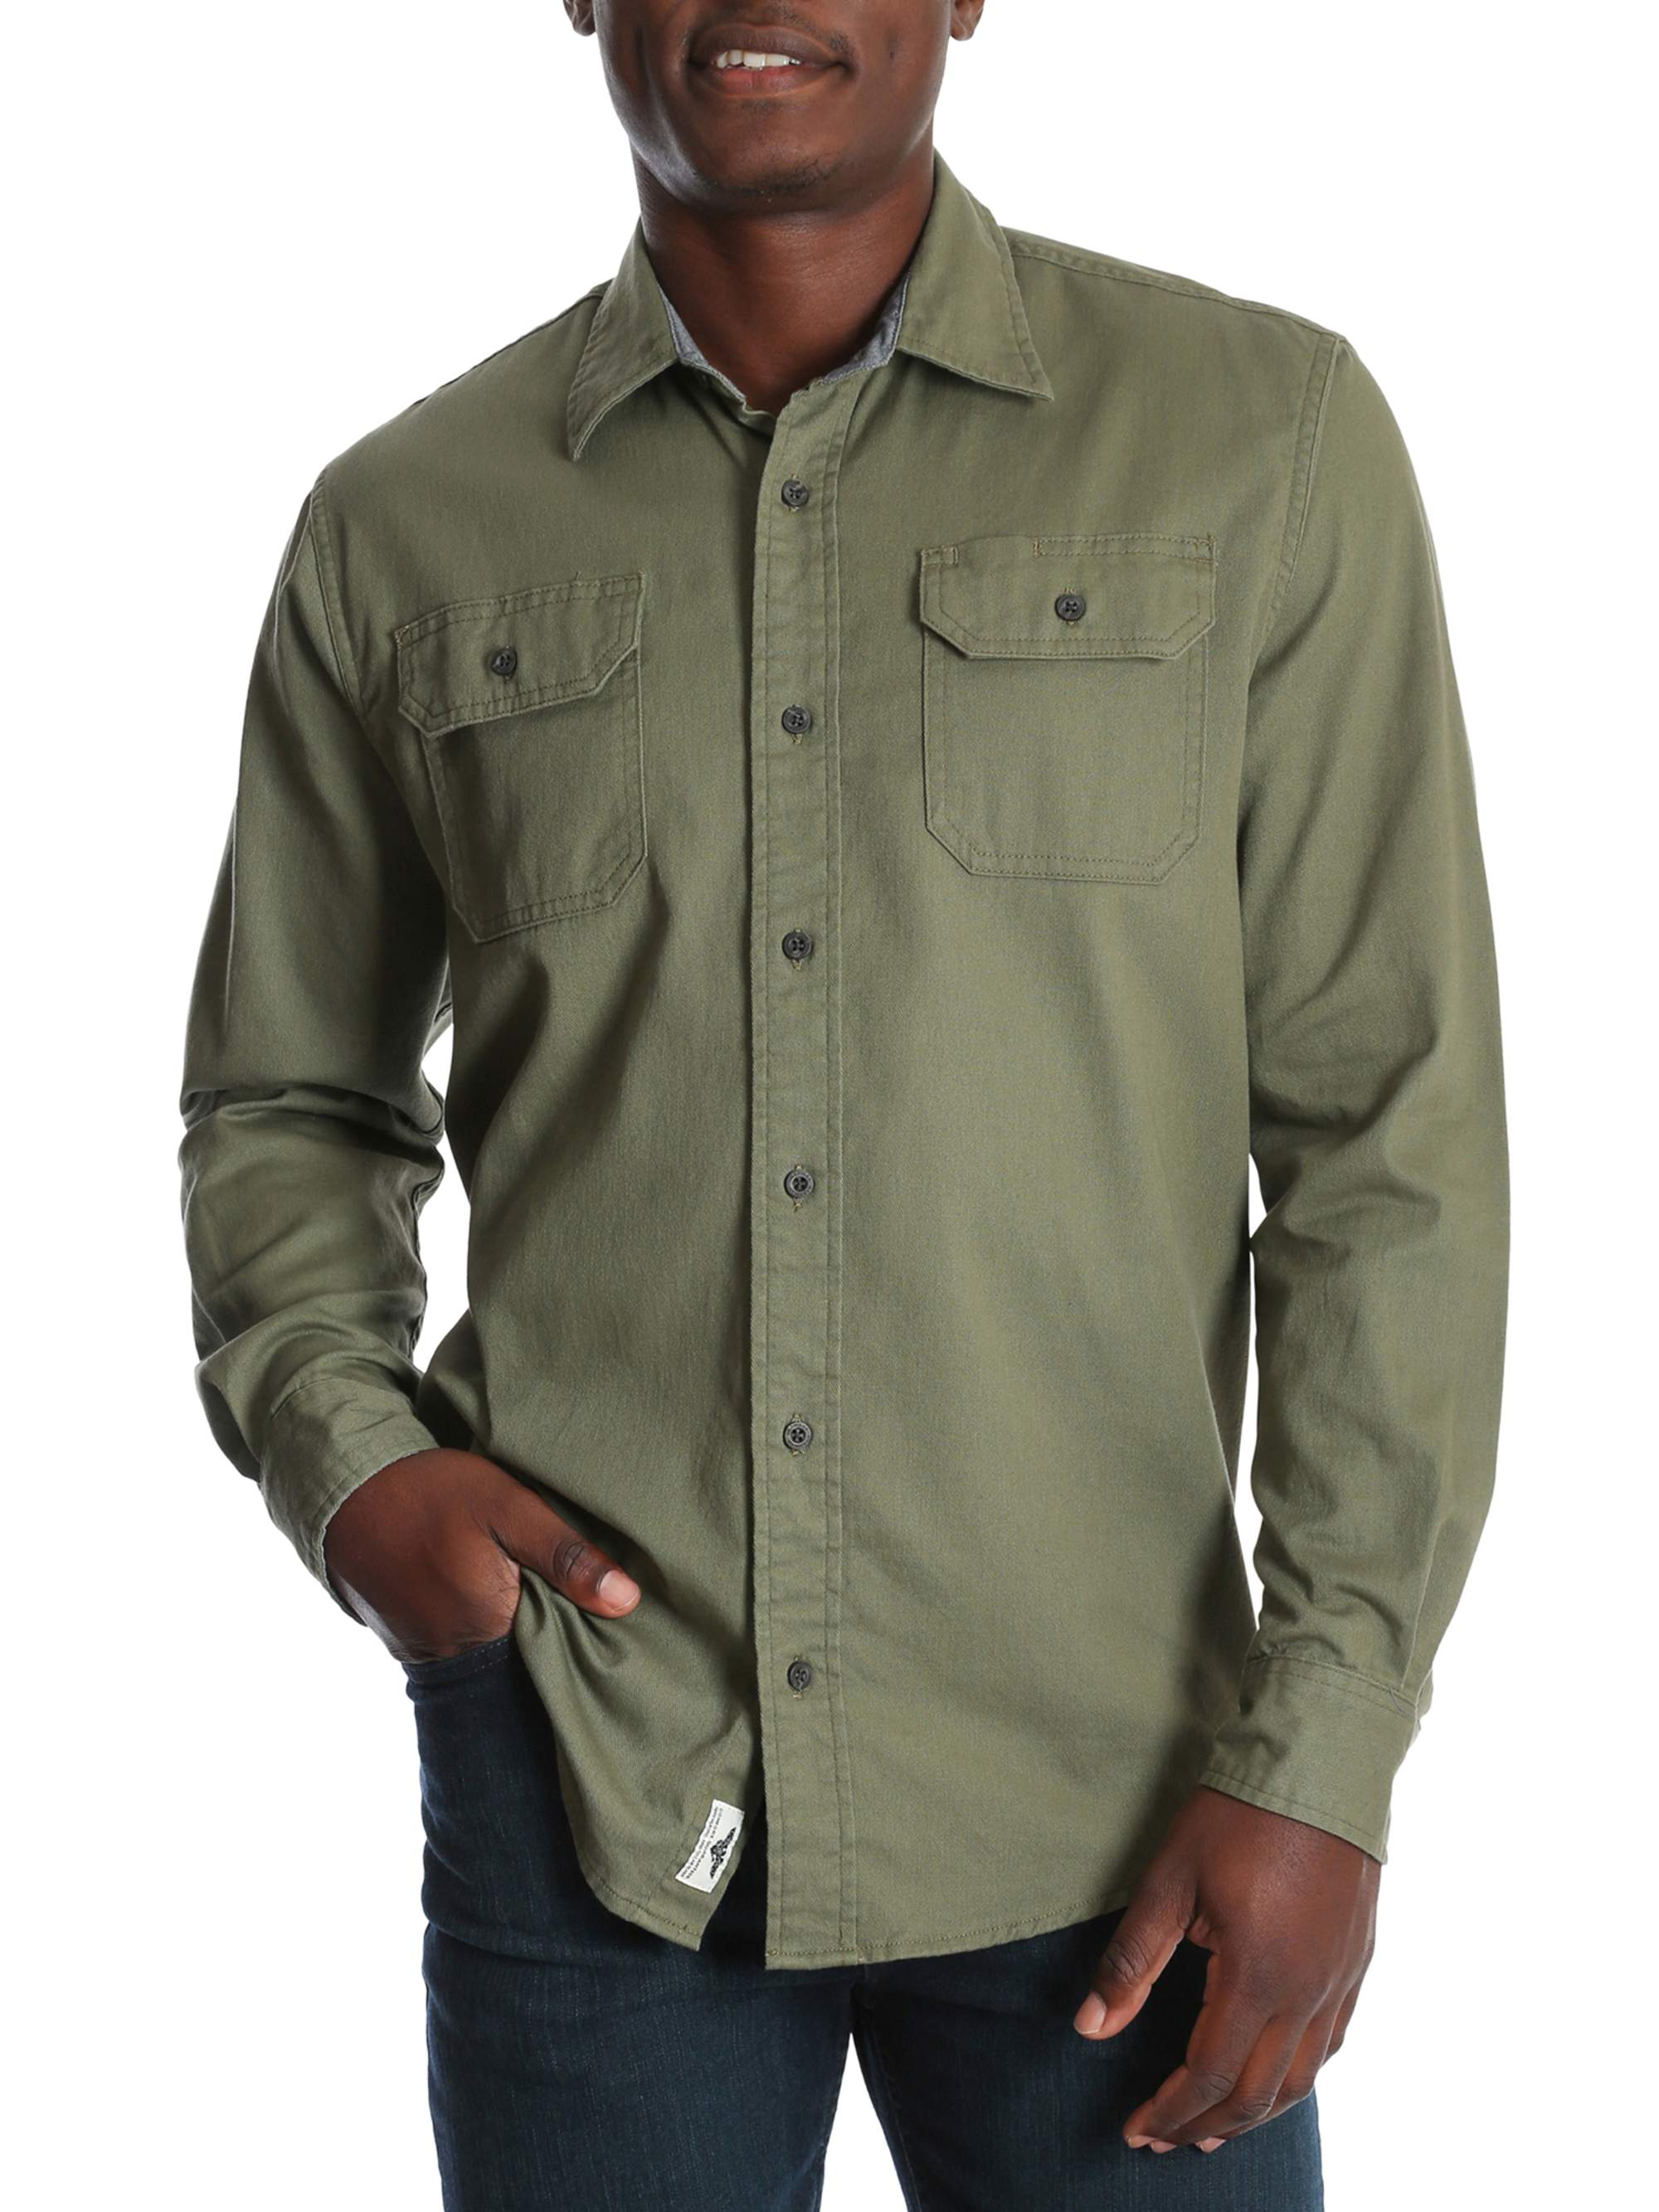 e0d3fa40 Wrangler - Wrangler Men's and Big & Tall Long Sleeve Stretch Twill Shirt,  up to Size 3XLT - Walmart.com